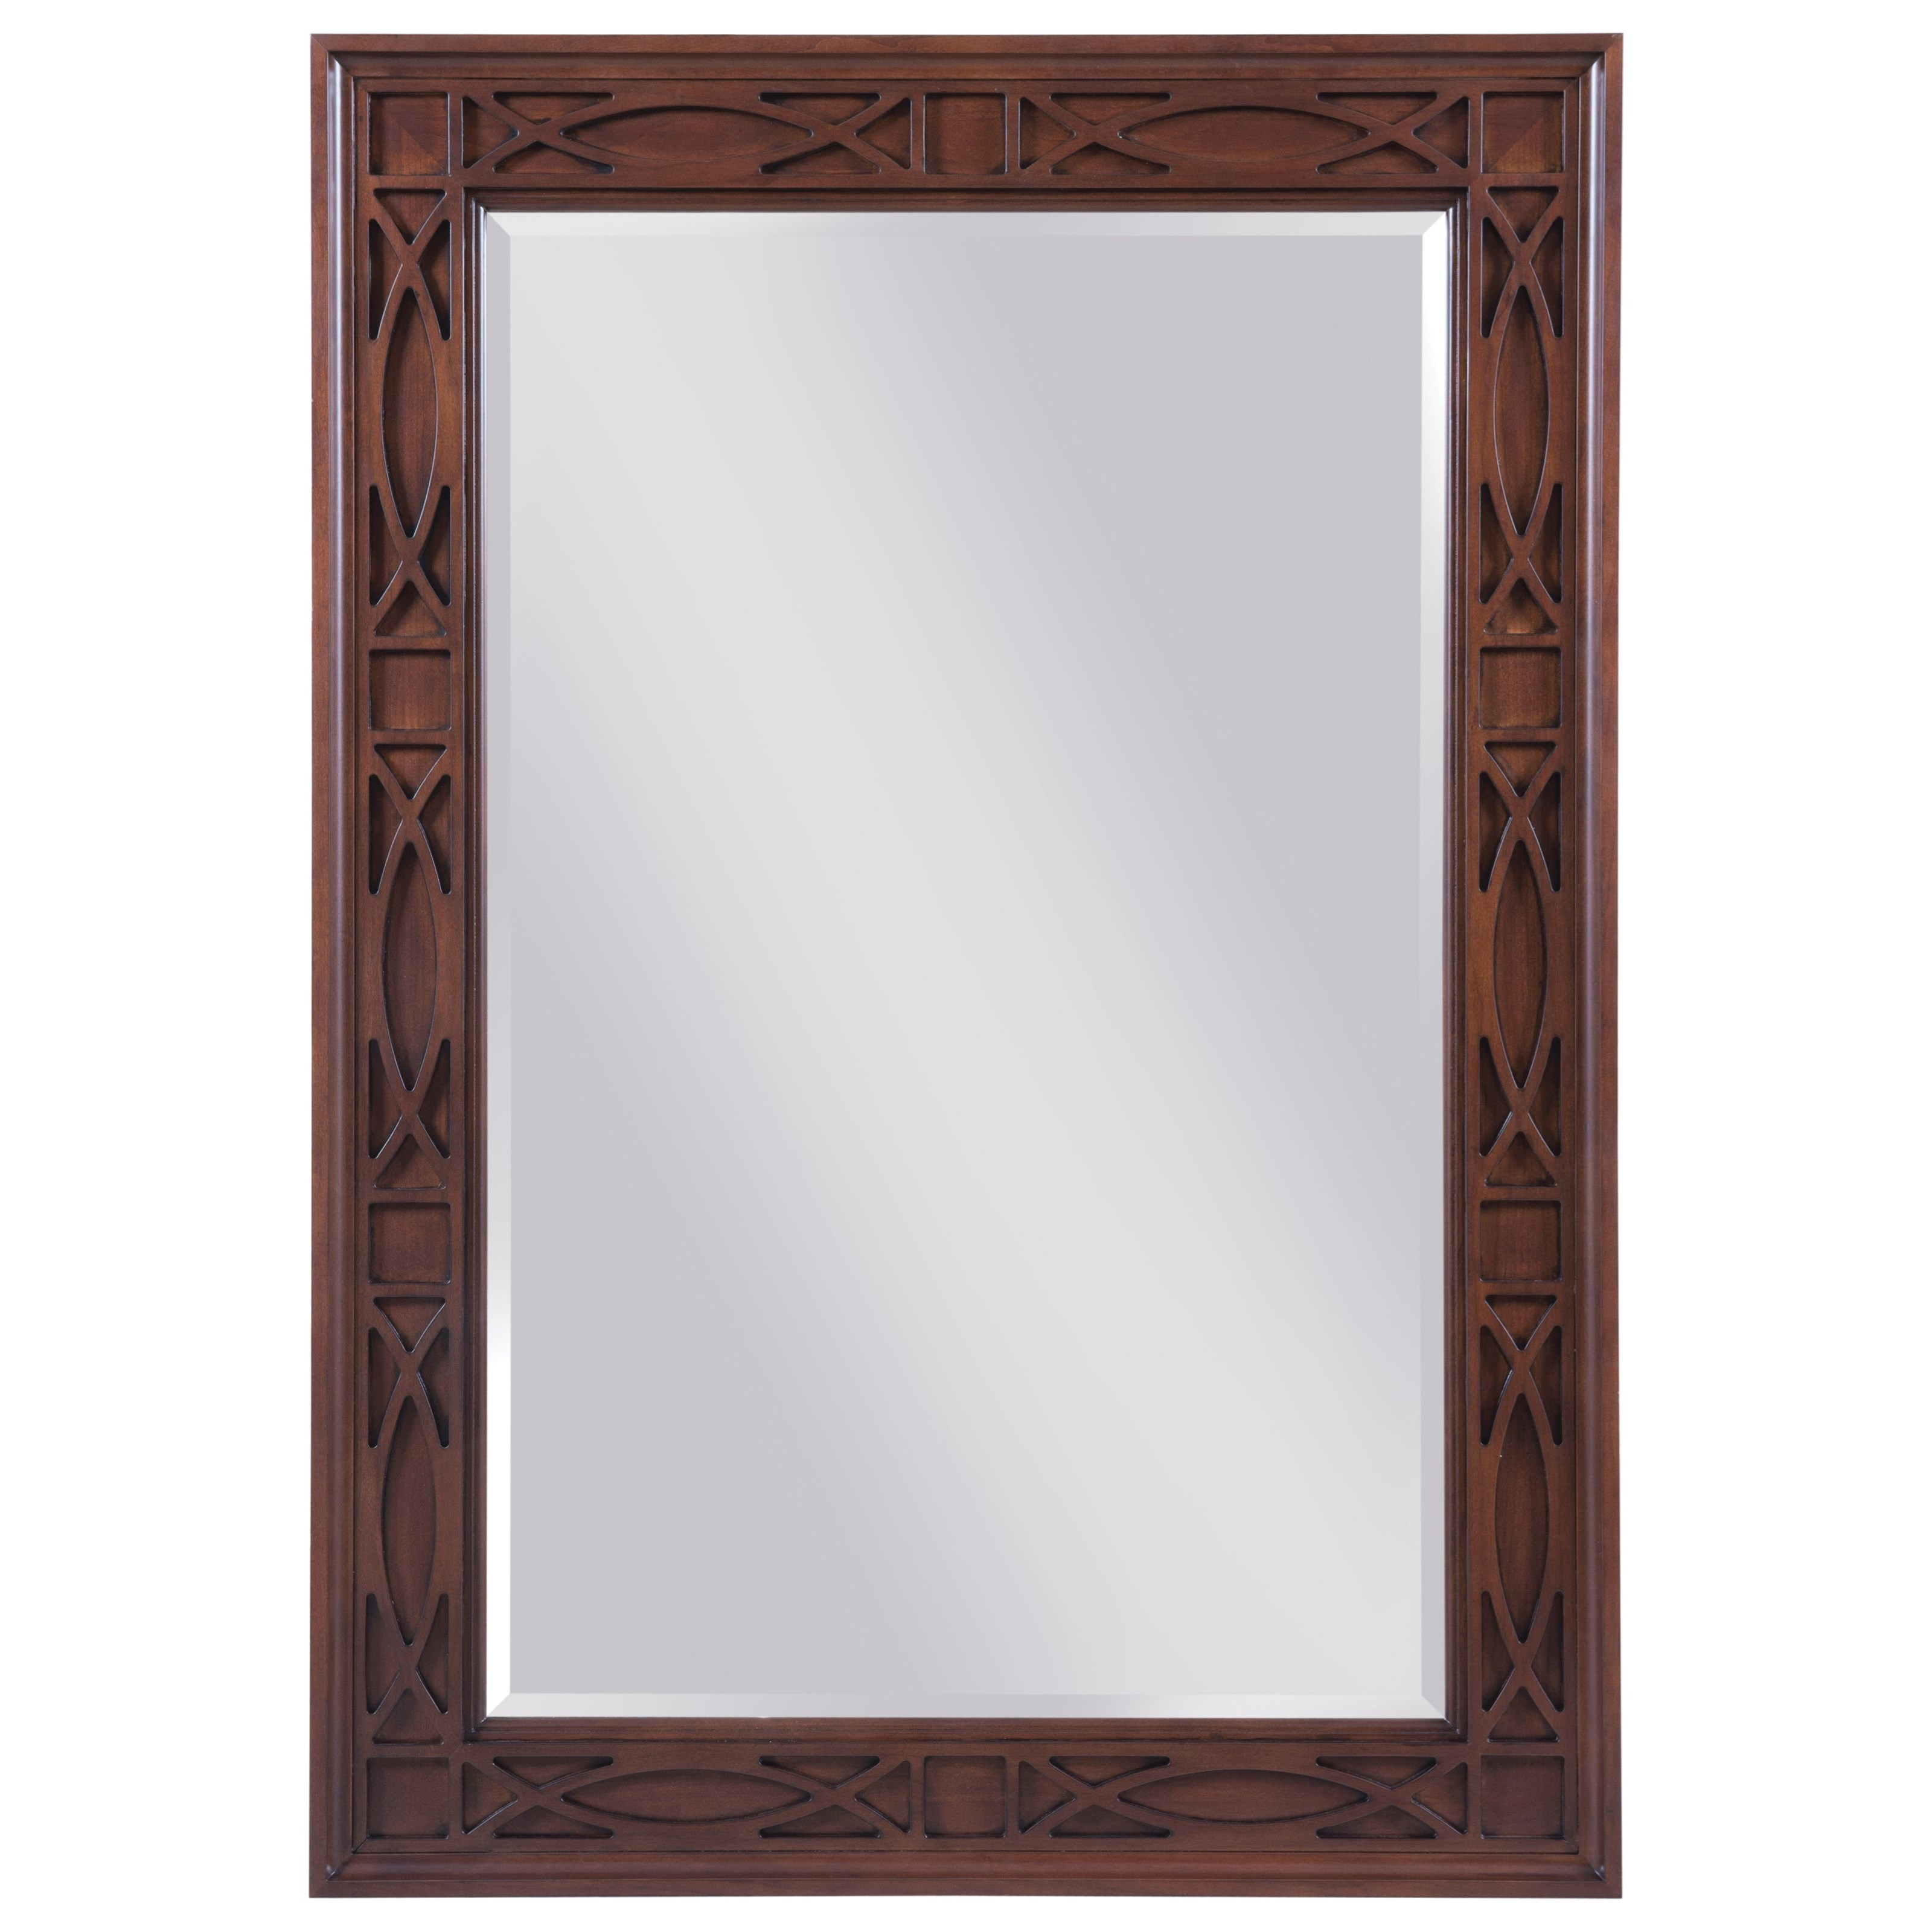 Traditional rectangular mirror with decorative relief carving by